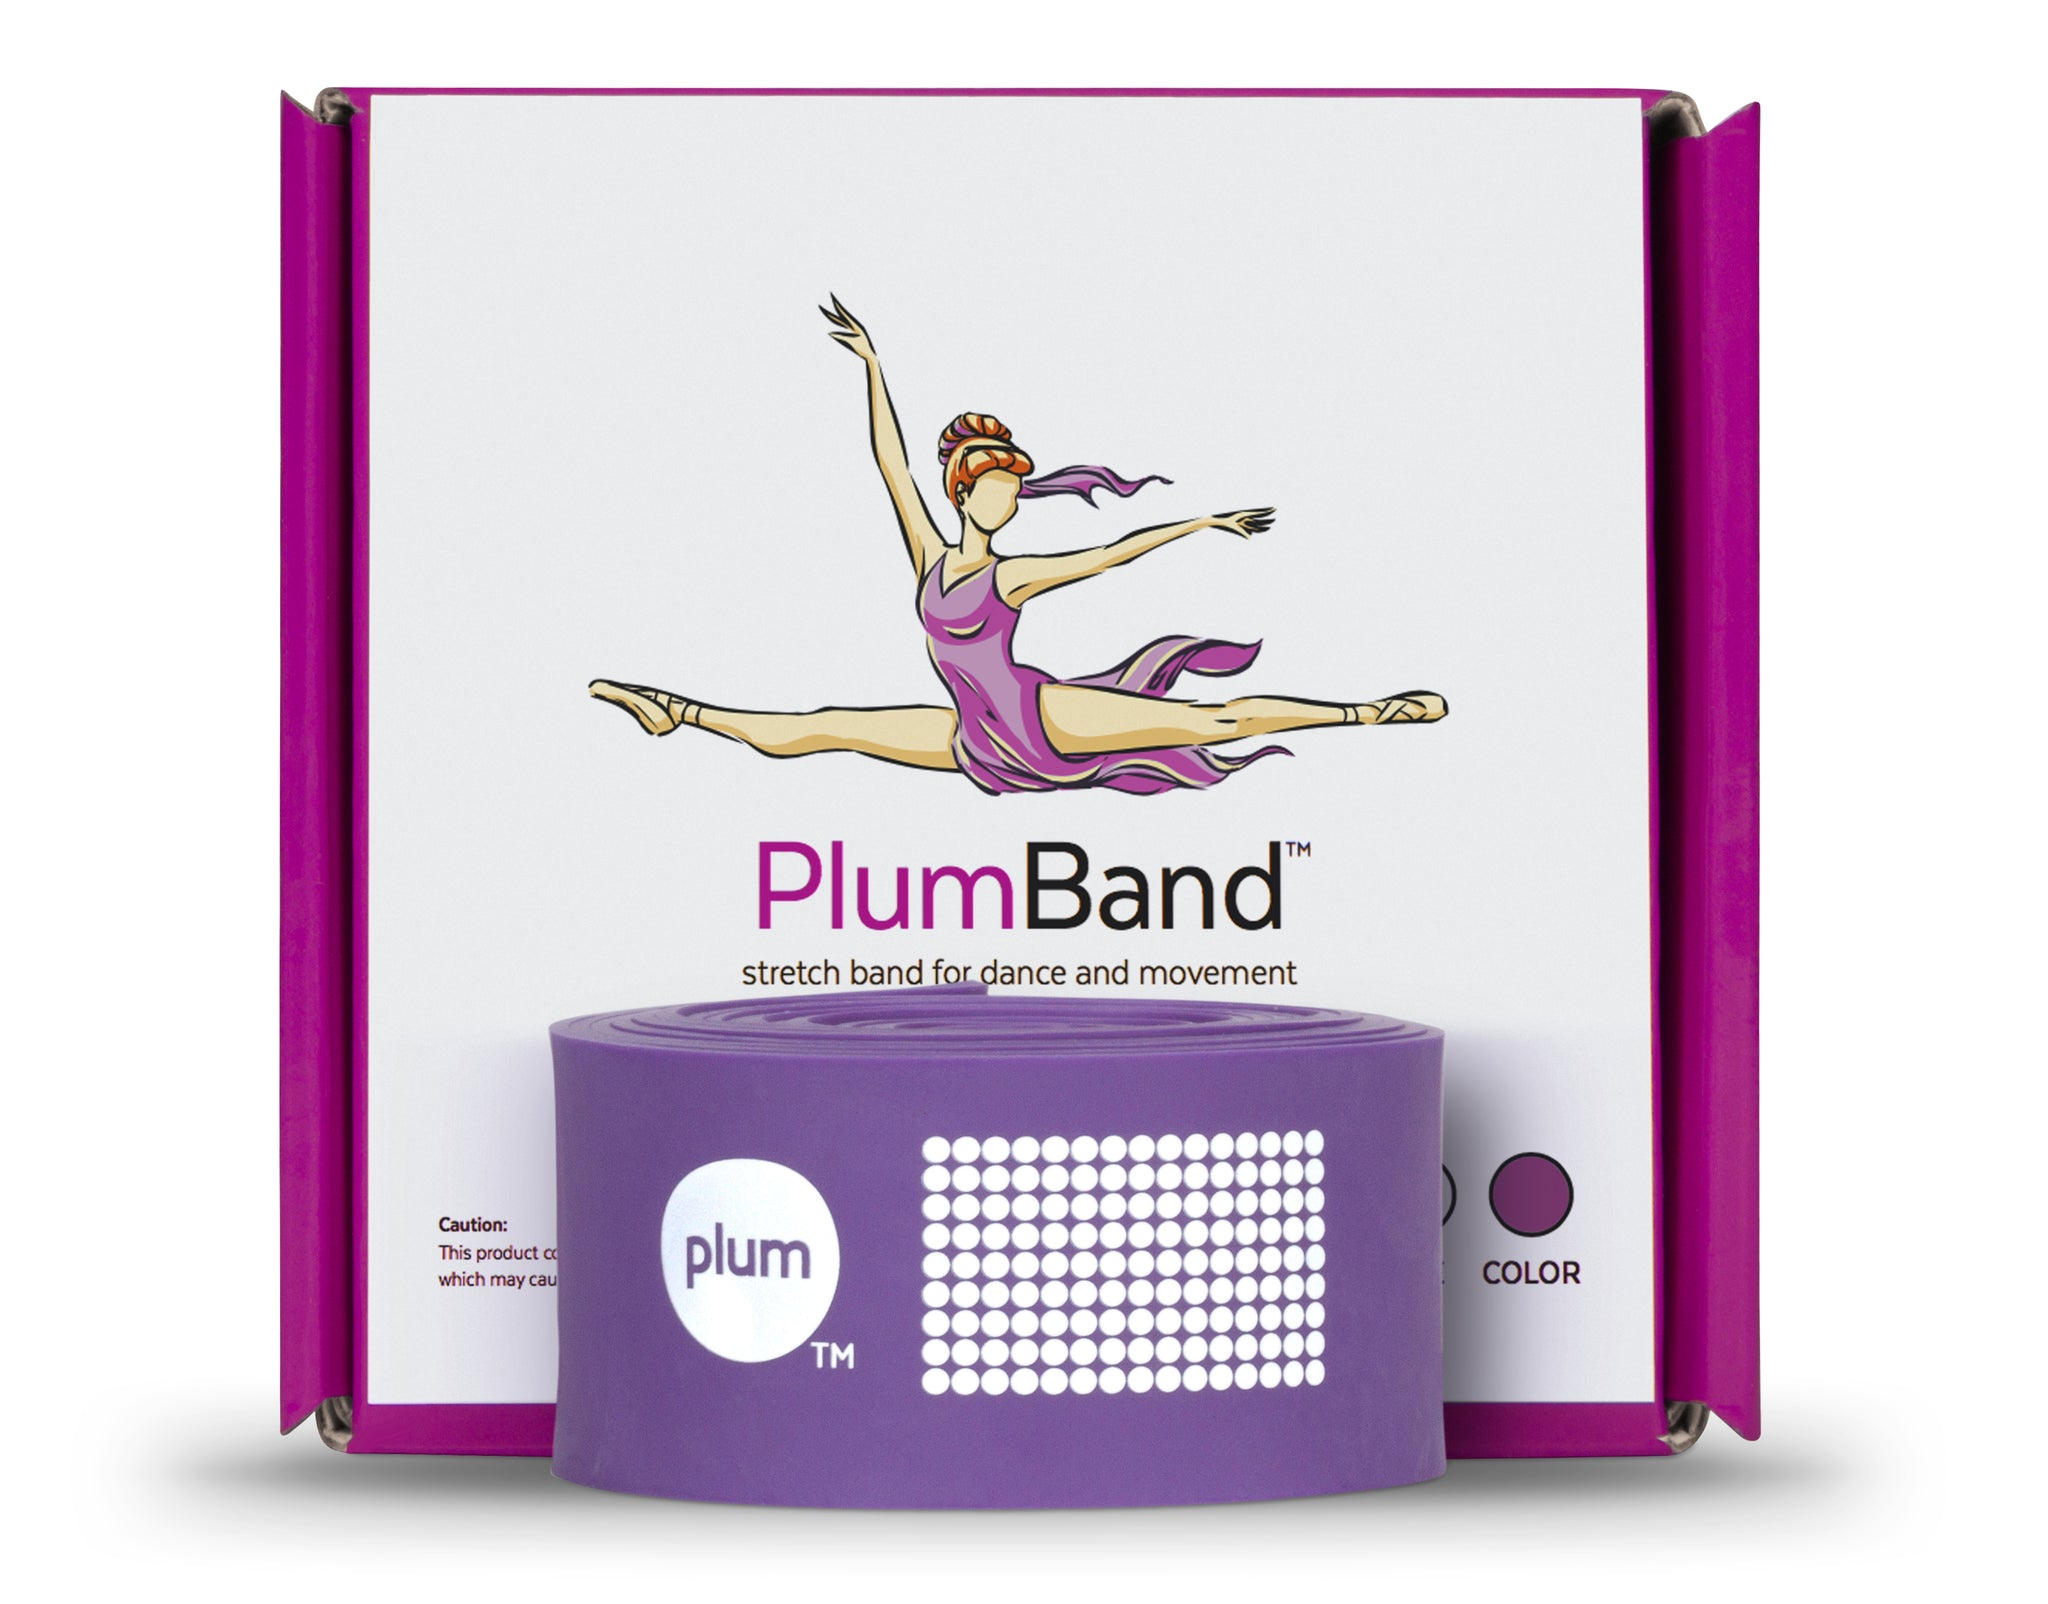 The PlumBand® stretch band